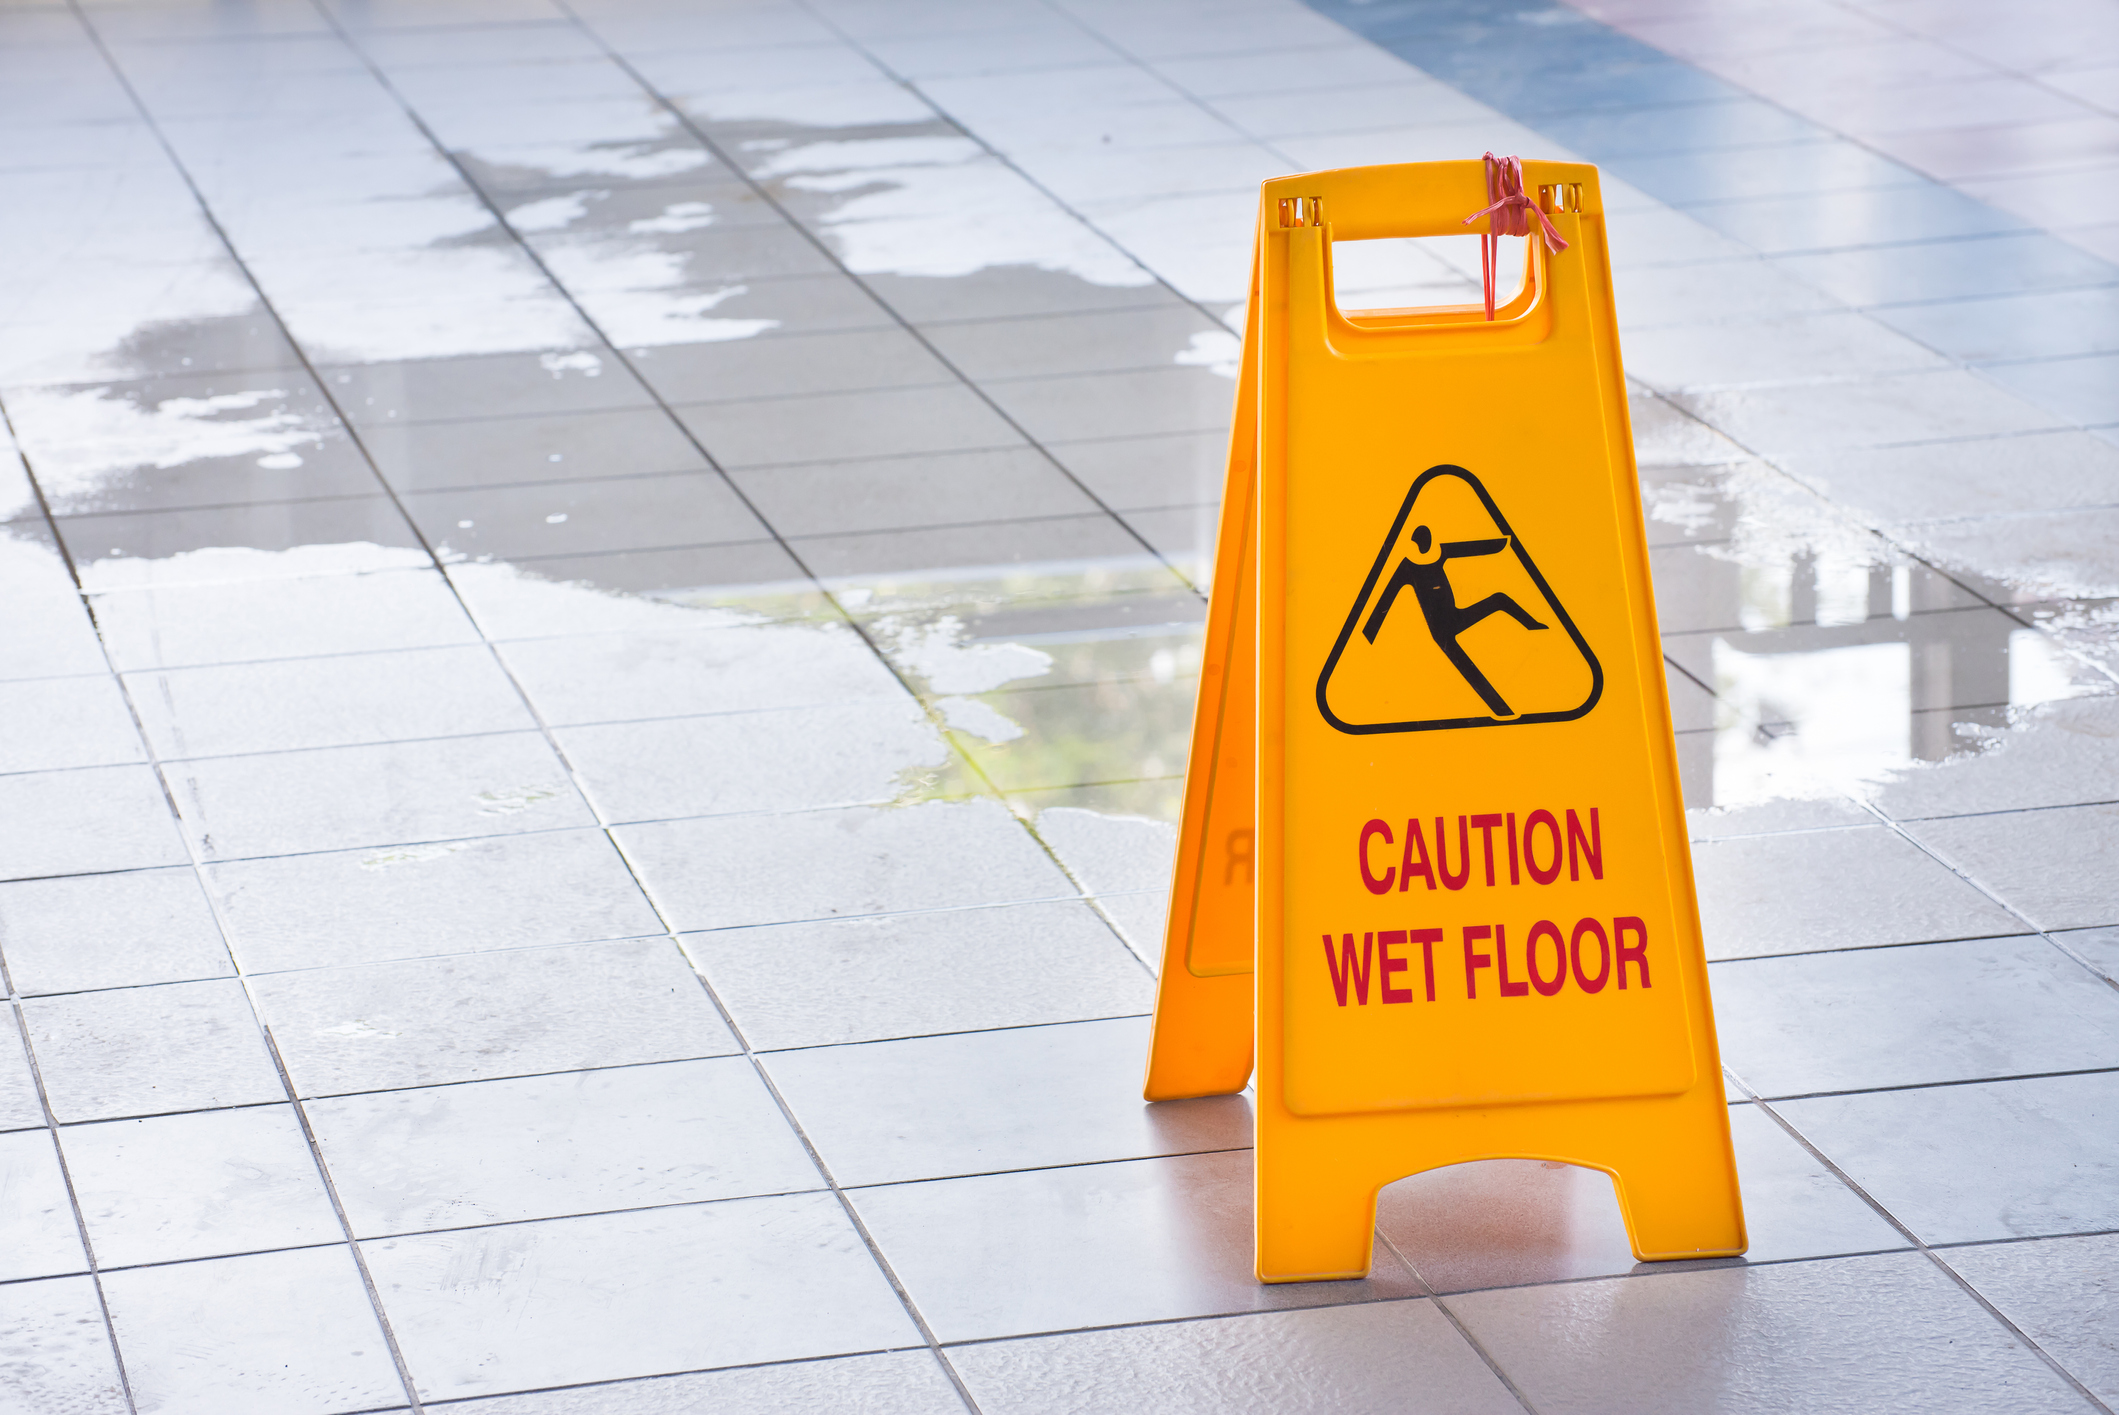 A wet floor sign by a puddle on a walkway.